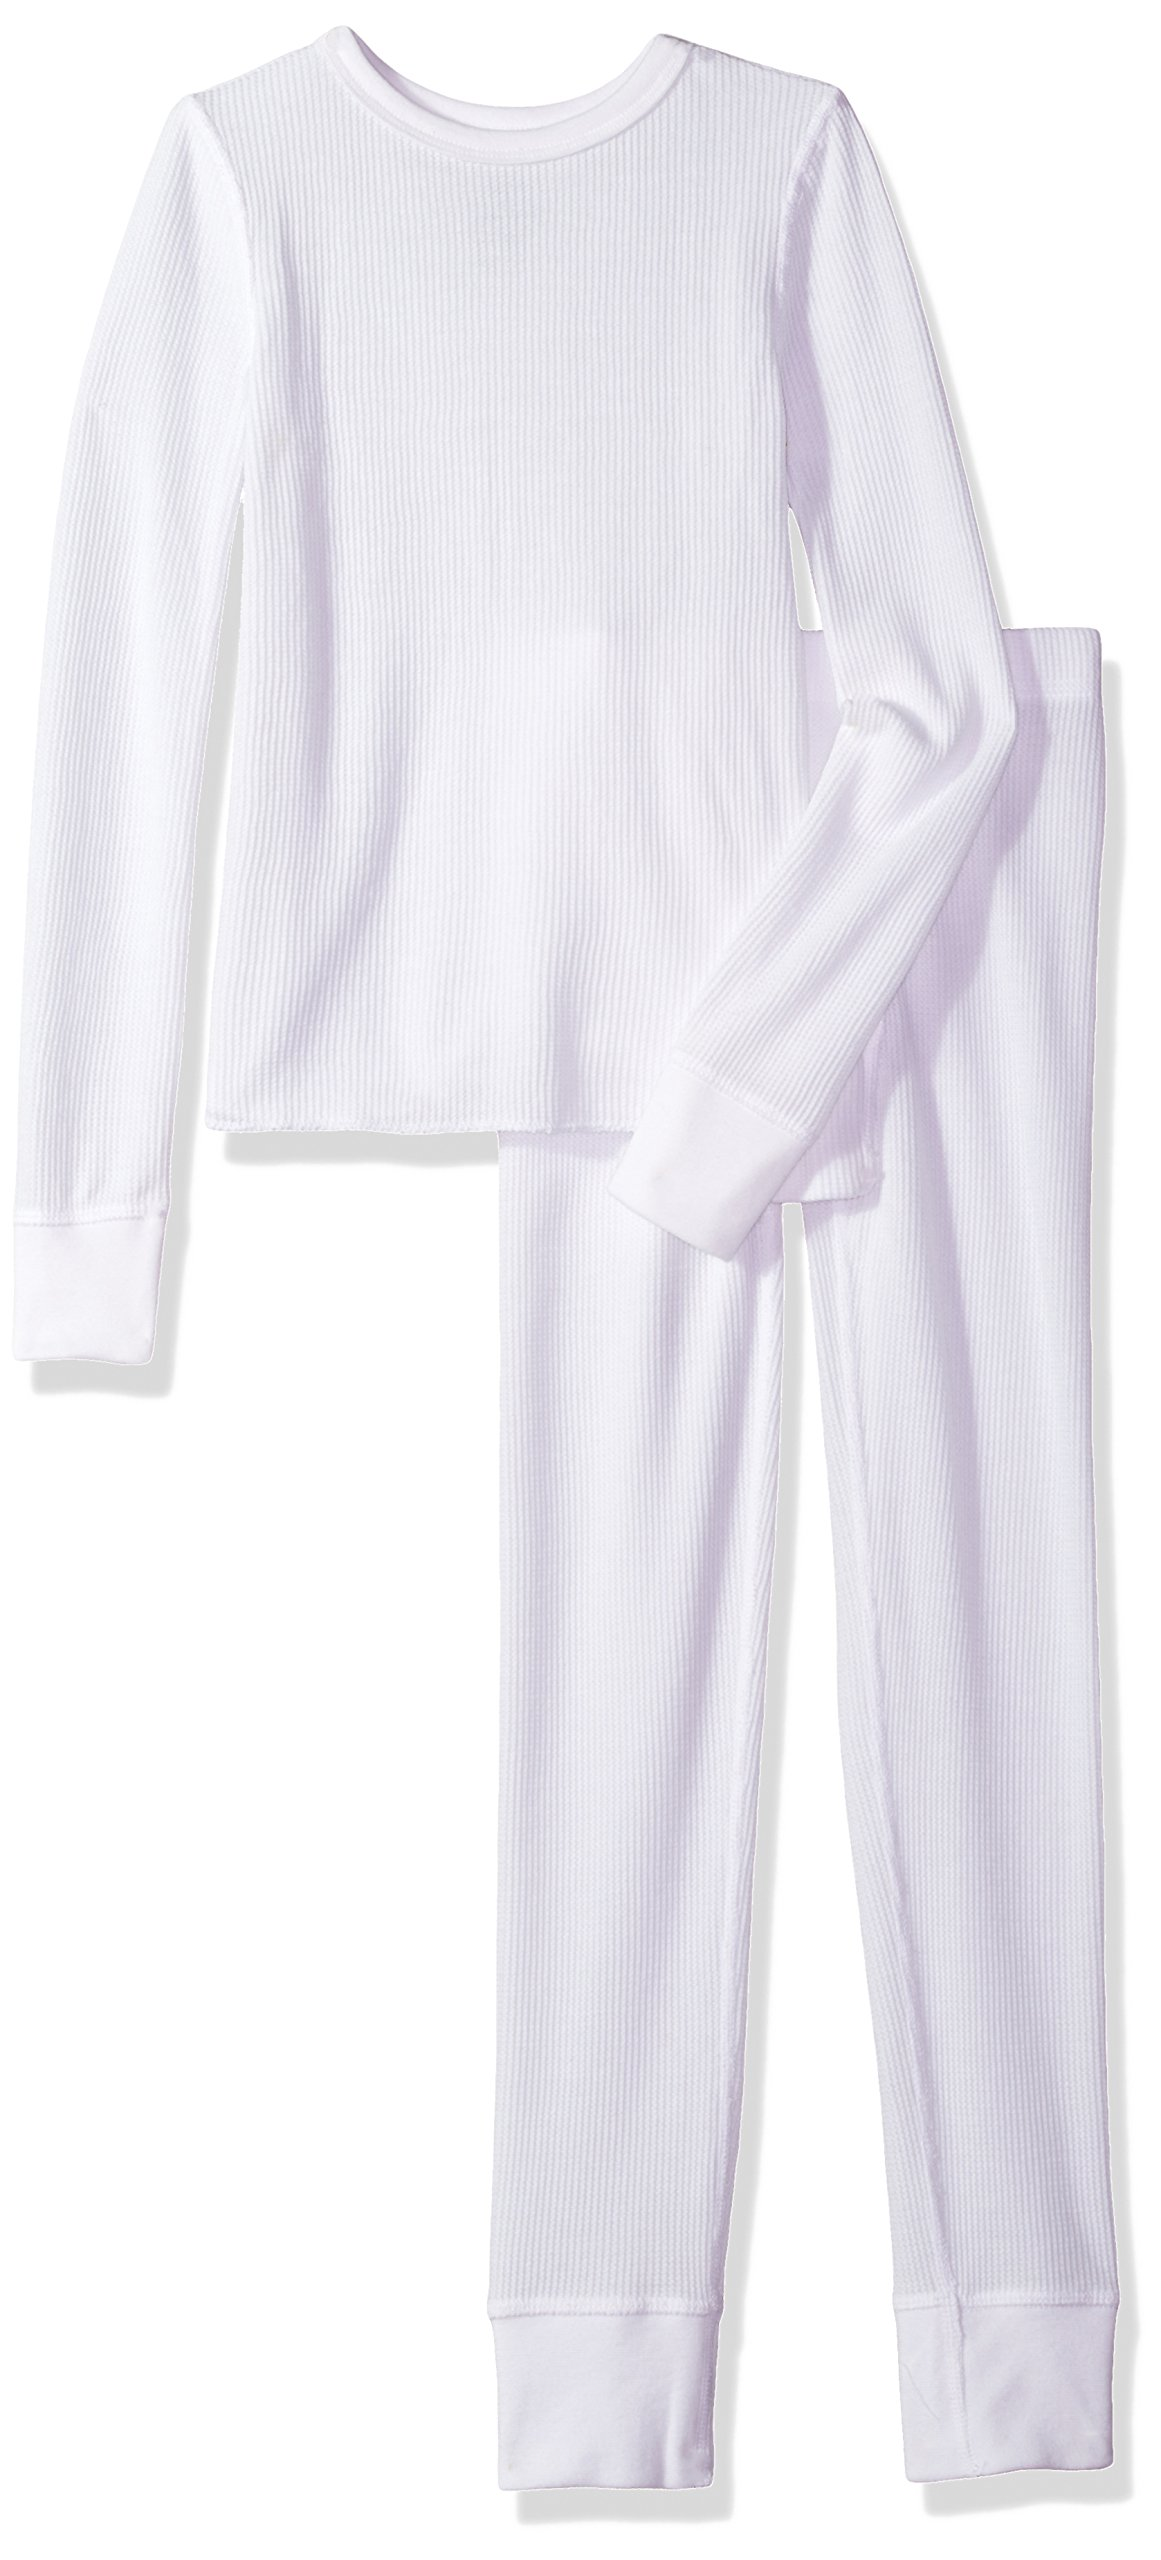 Fruit of the Loom Big Boys' Waffle Thermal Underwear Set, Arctic White, 14/16